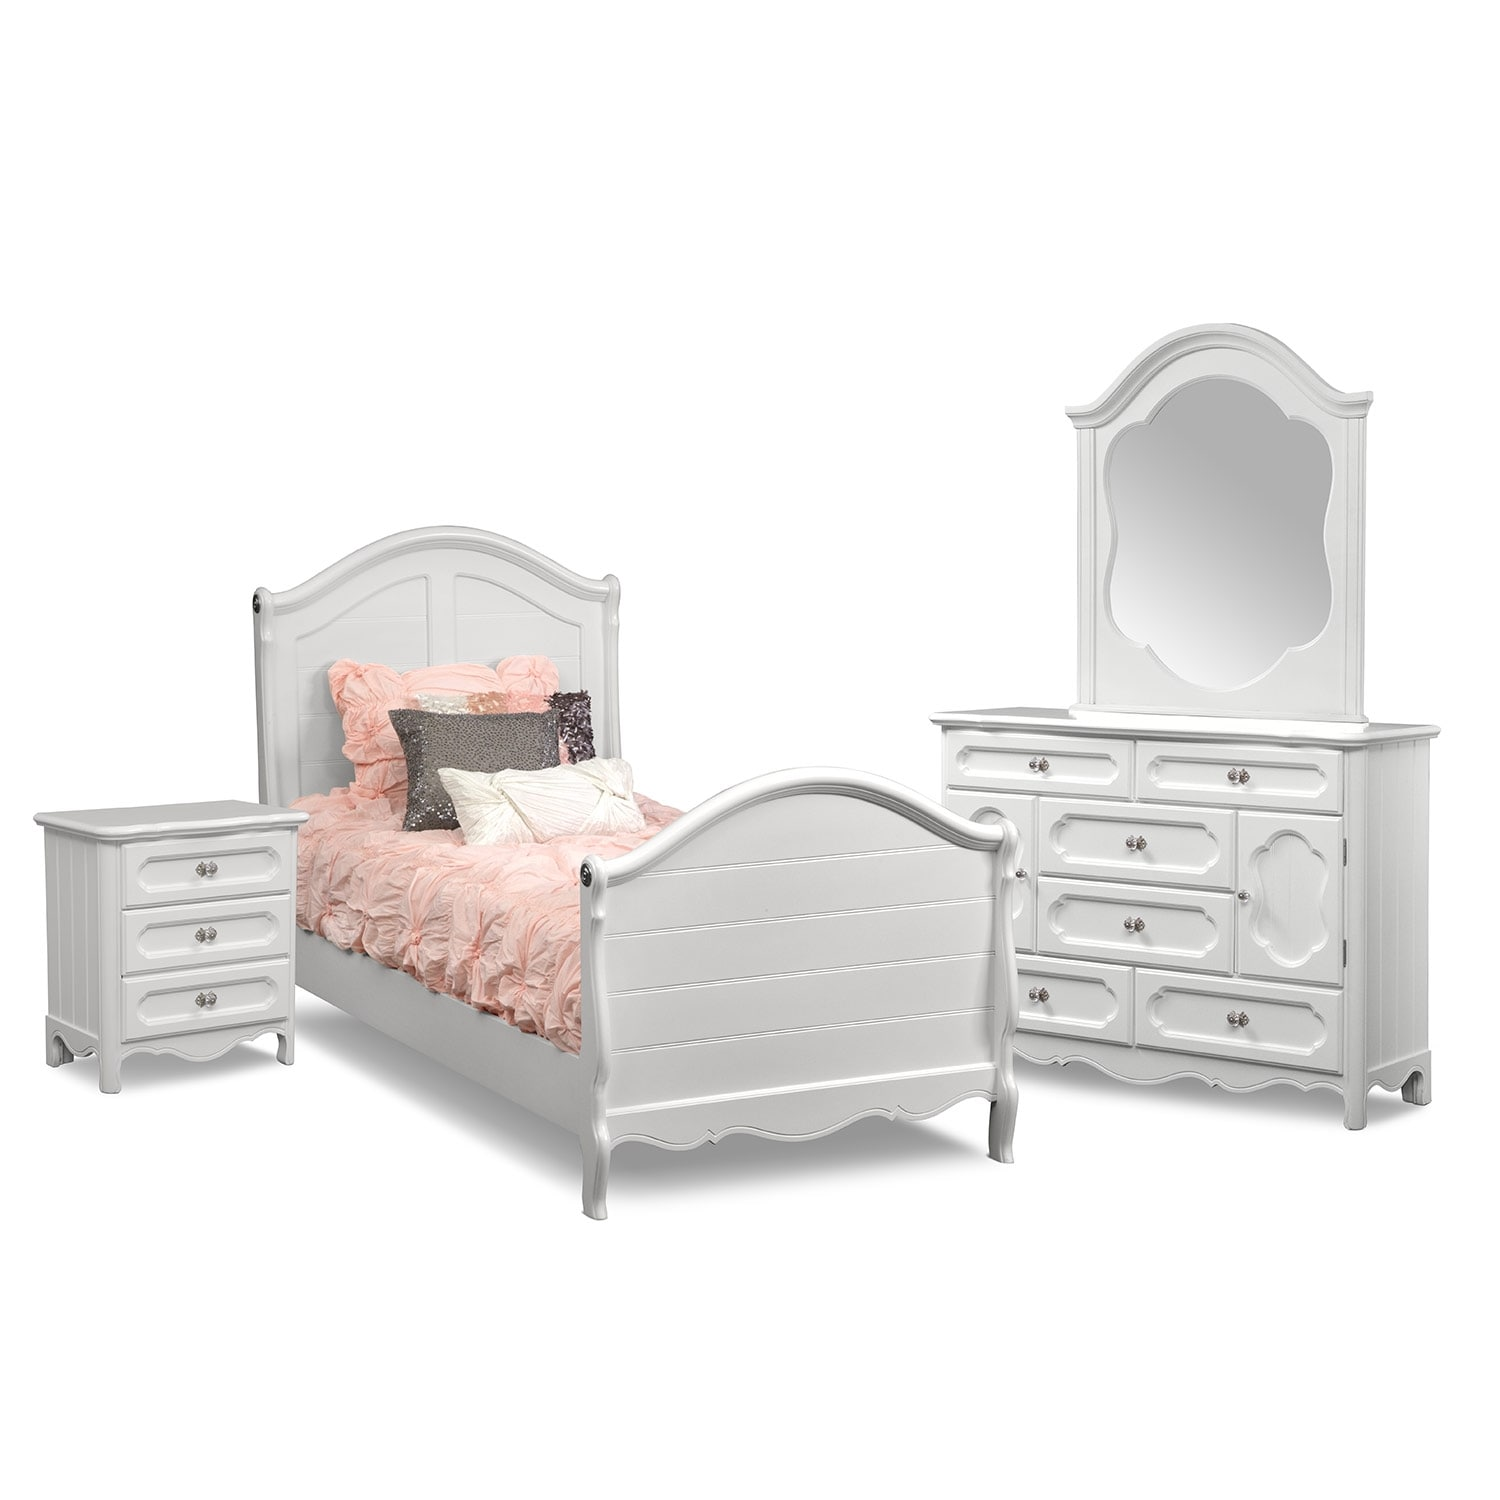 Carly 6 piece full bedroom set white value city furniture for Bedroom 6 piece set